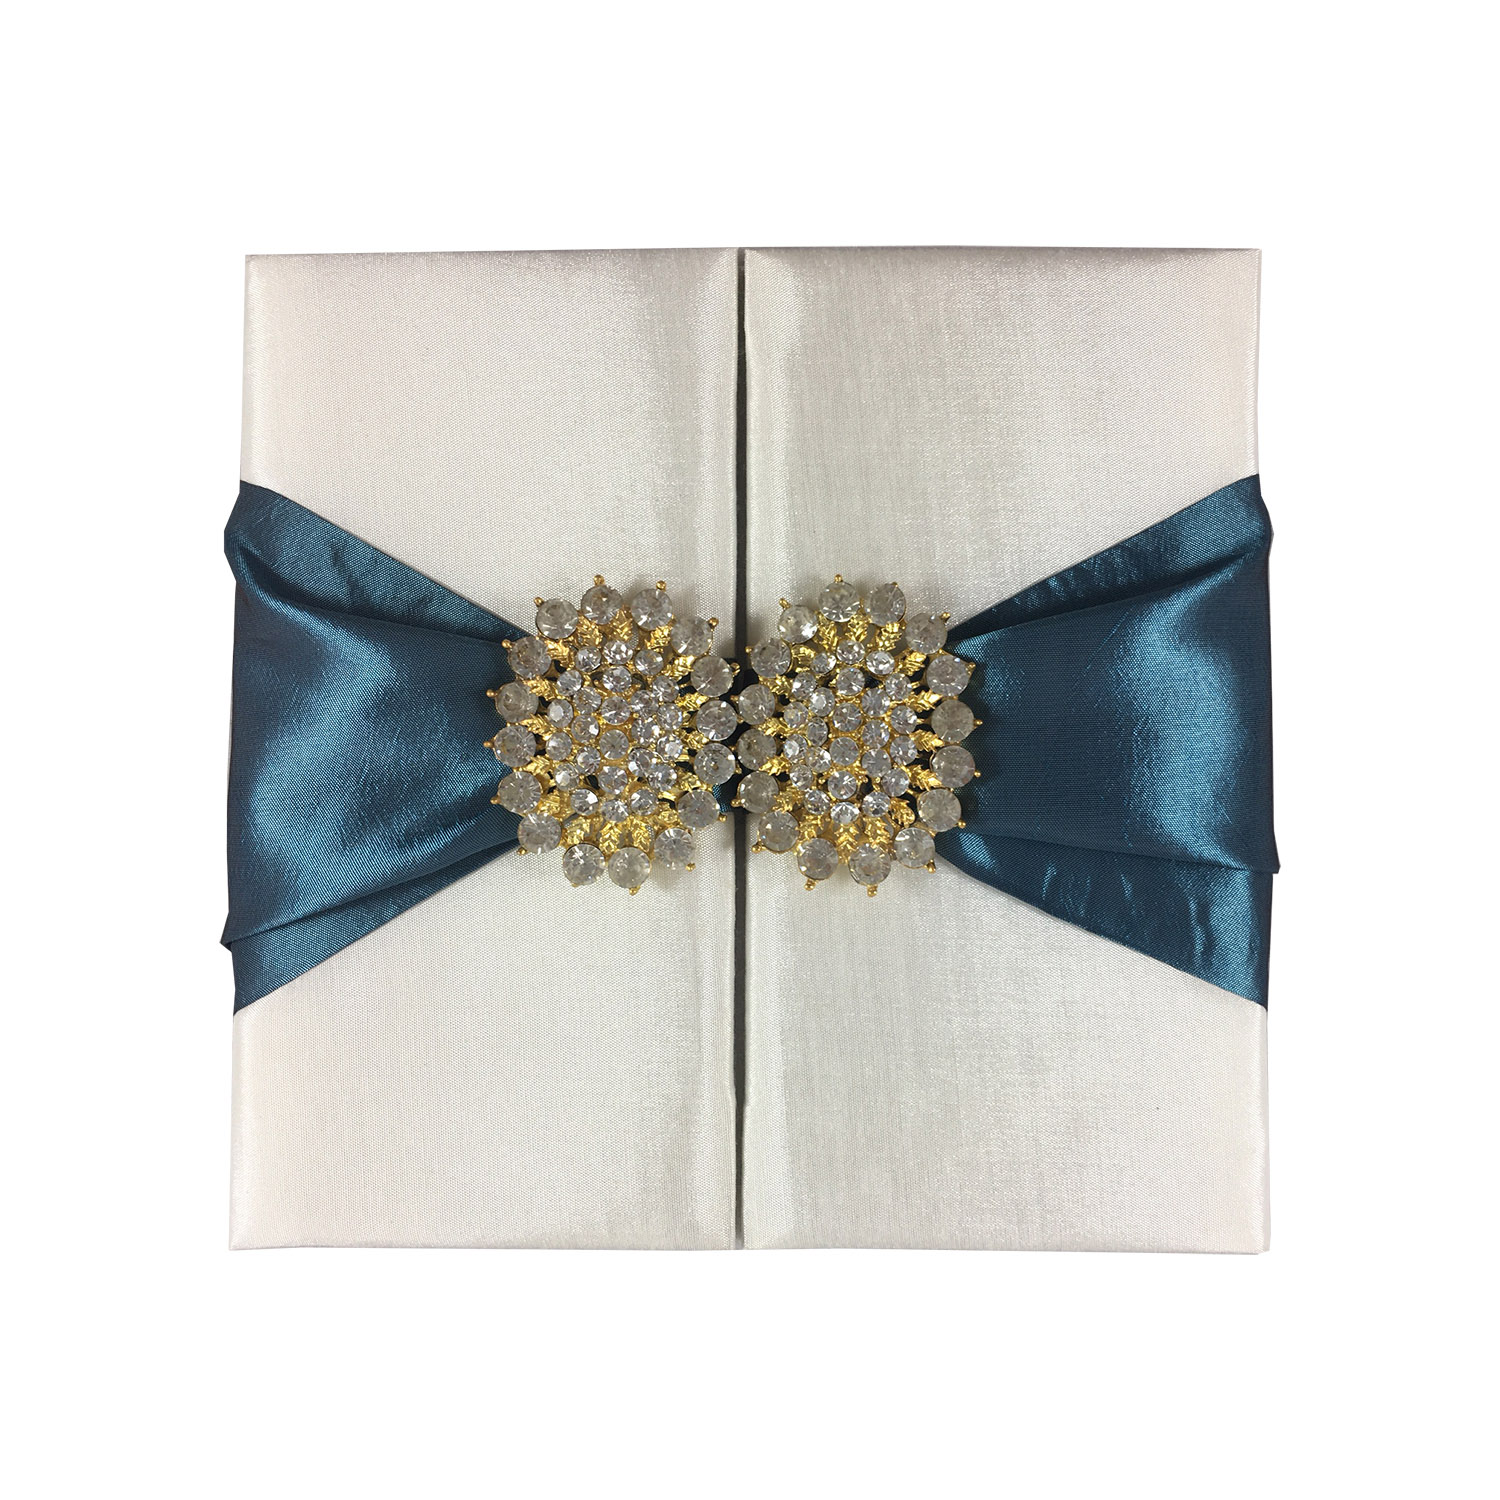 Ivory and teal luxury wedding invitation folder with brooch